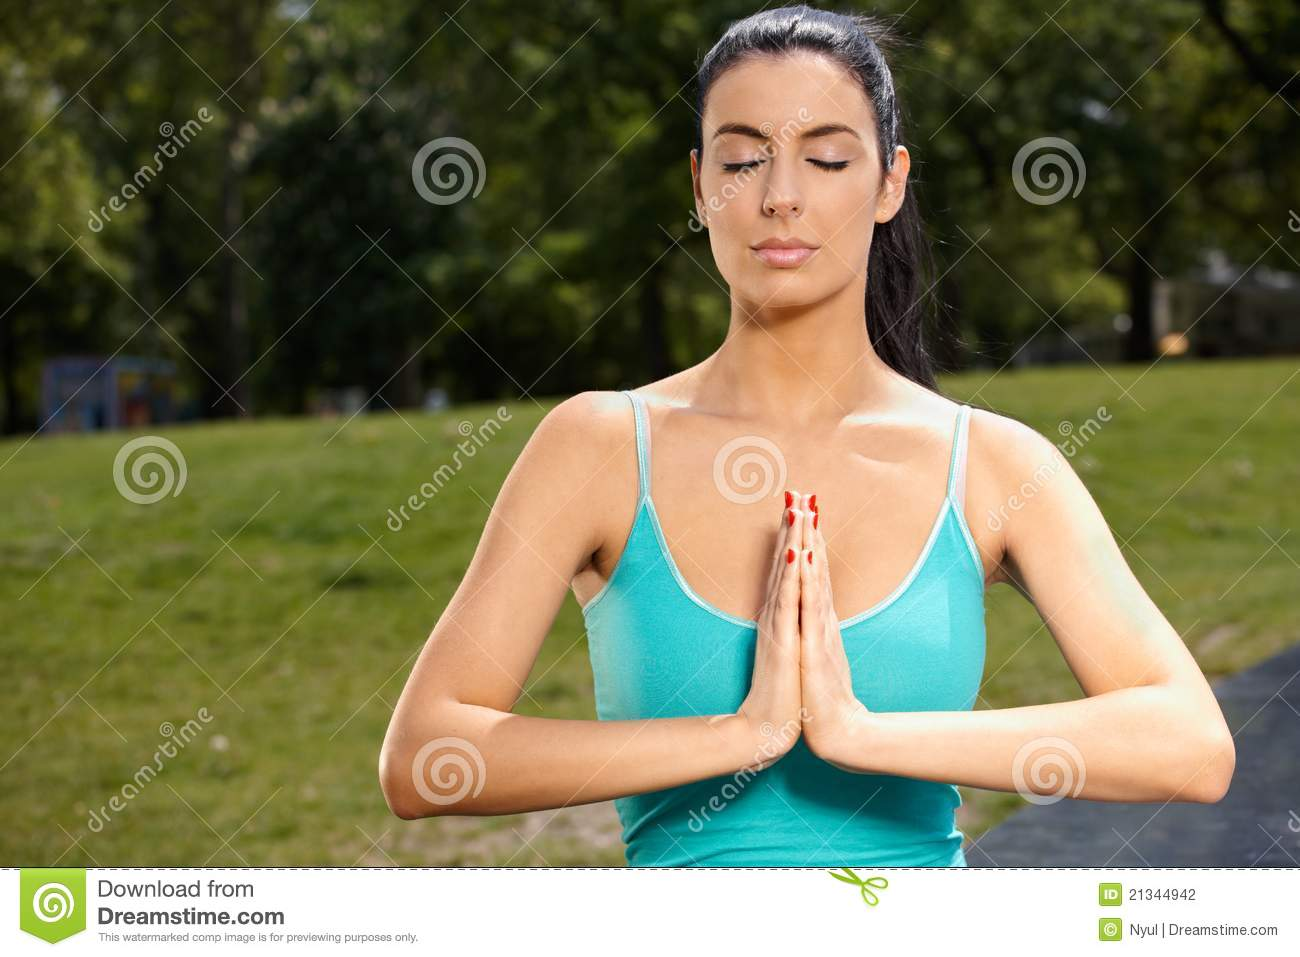 Beautiful woman meditating in park